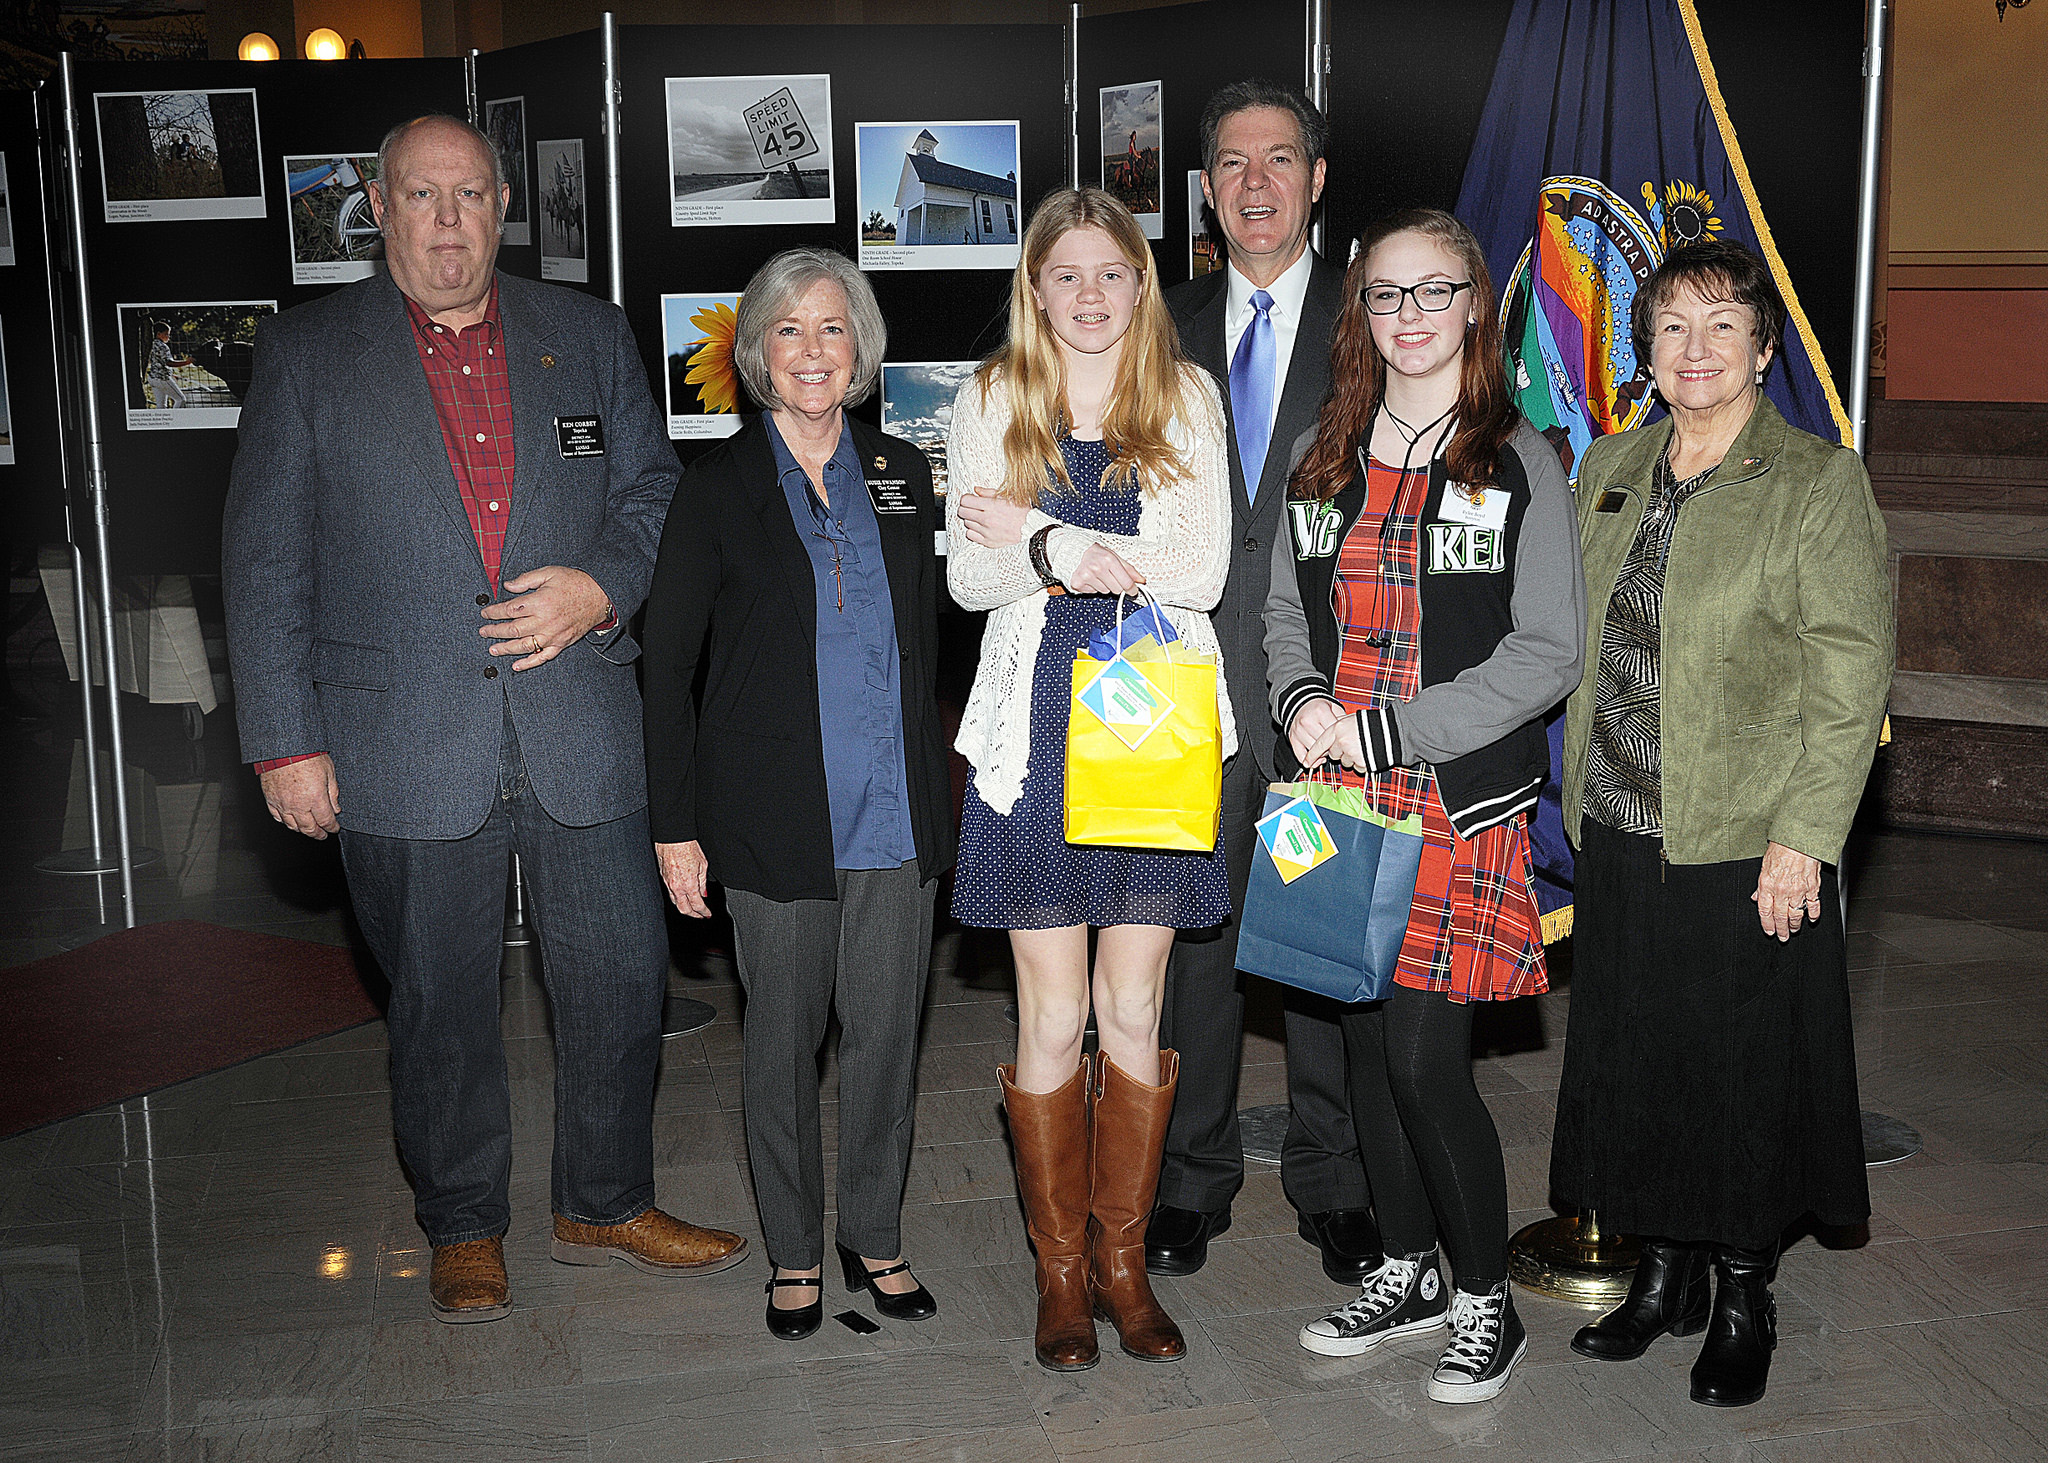 Eighth grade winners Samantha Wilson and Michaela Falley with Representative Ken Corbet, Representative Susie Swanson, Governor Sam Brownback, and Marearl Denning